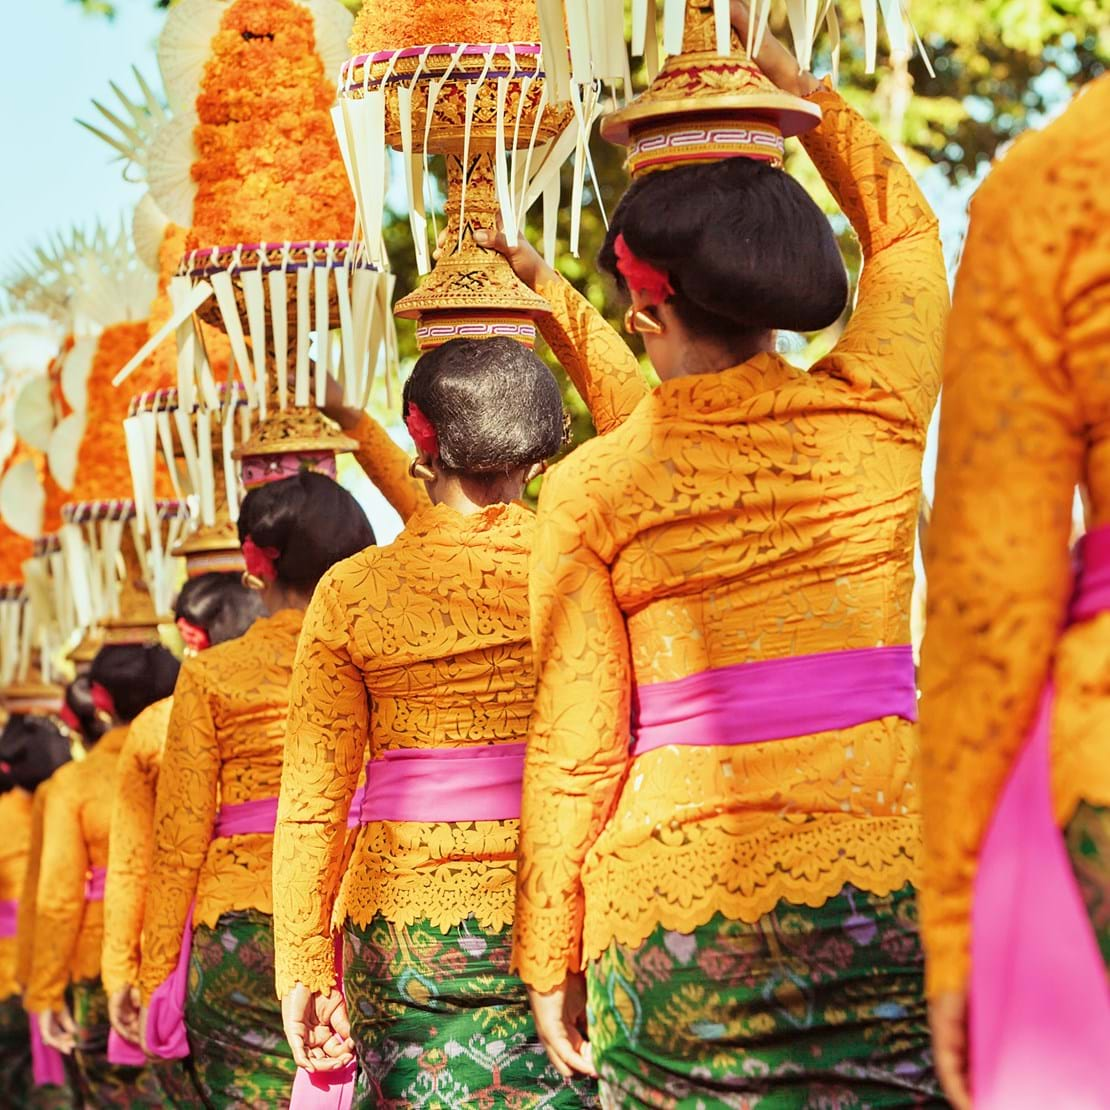 shutterstock_308561210 Procession of beautiful Balinese women in traditional costumes - sarong, carry offering on heads for Hindu ceremony. Arts festival, culture of Bali island and Indonesia people, Asian.jpg